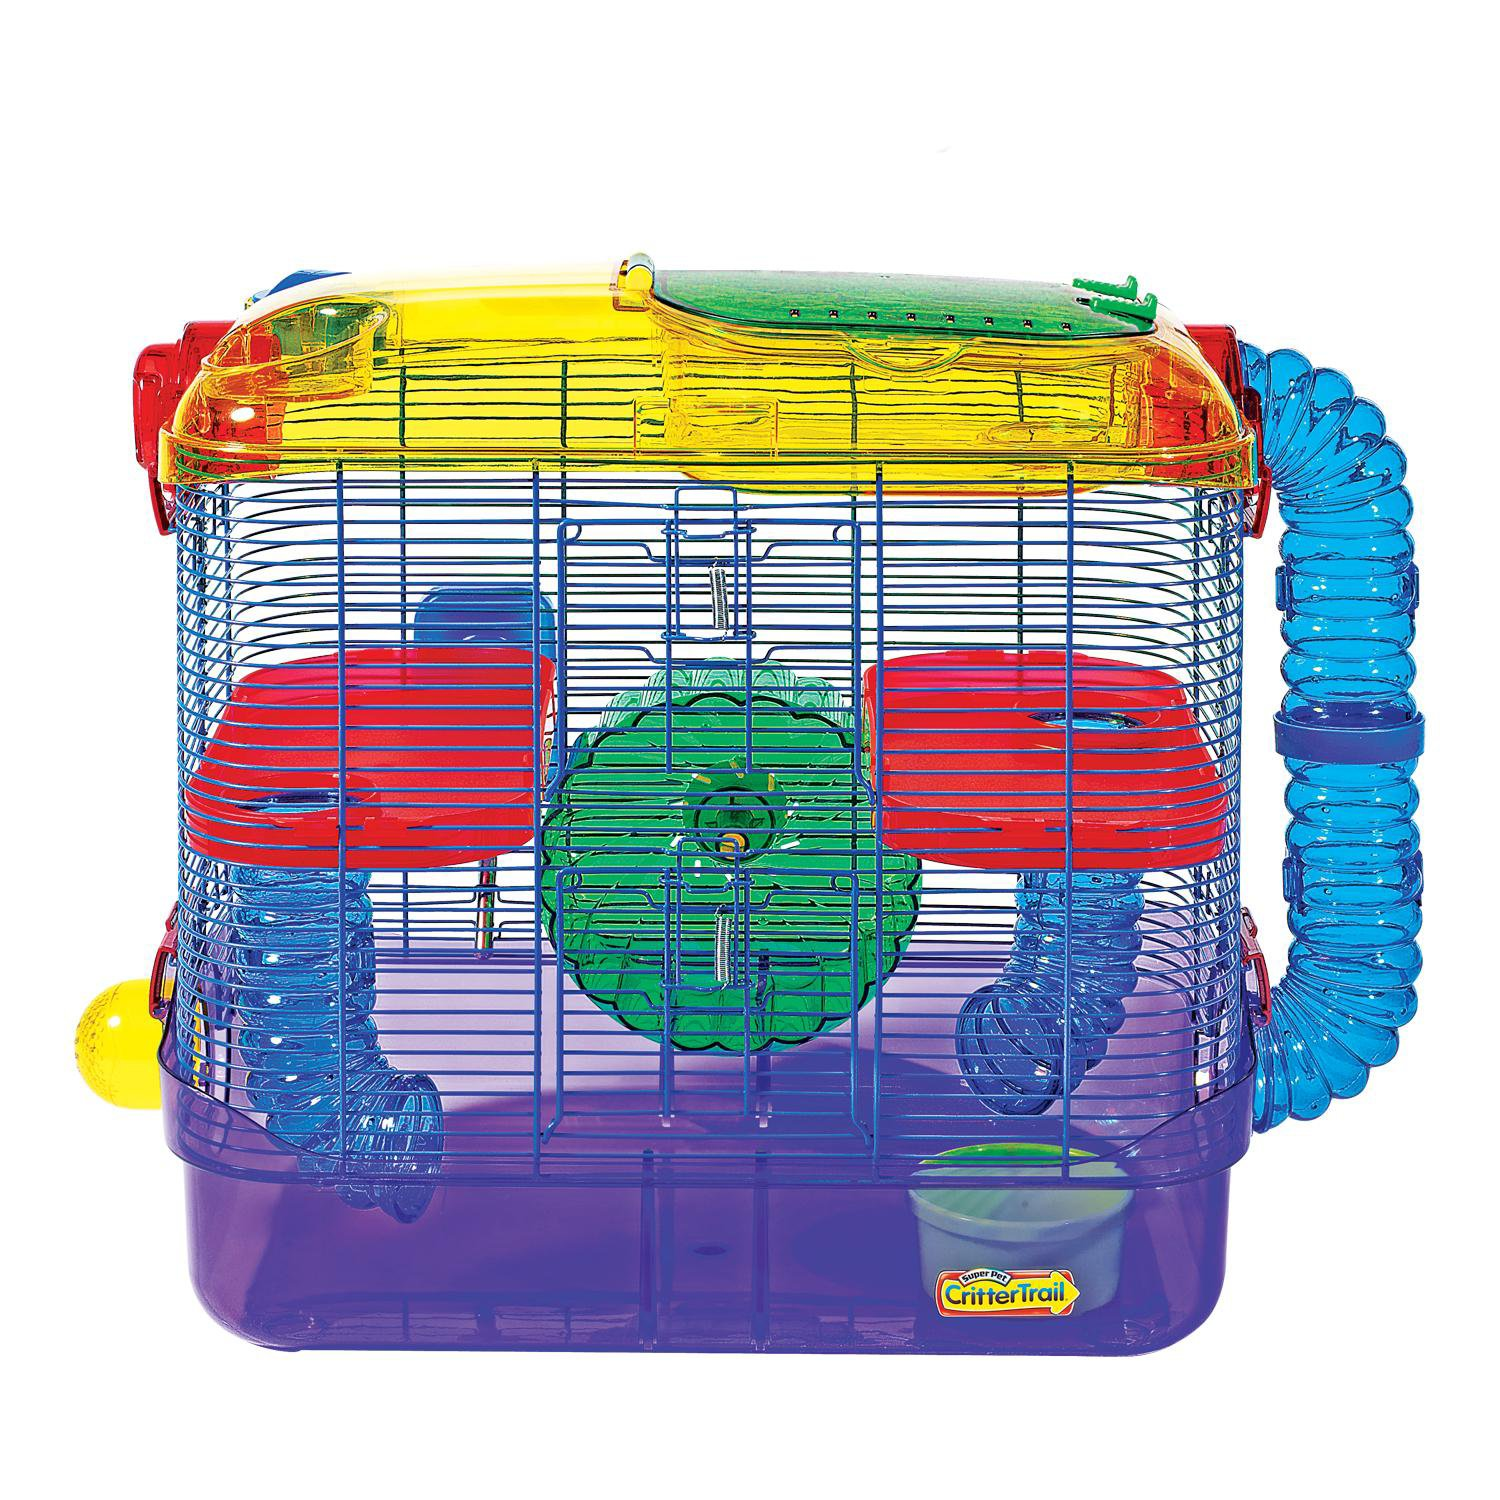 Super pet crittertrail two petco for Small guinea pig cages for sale